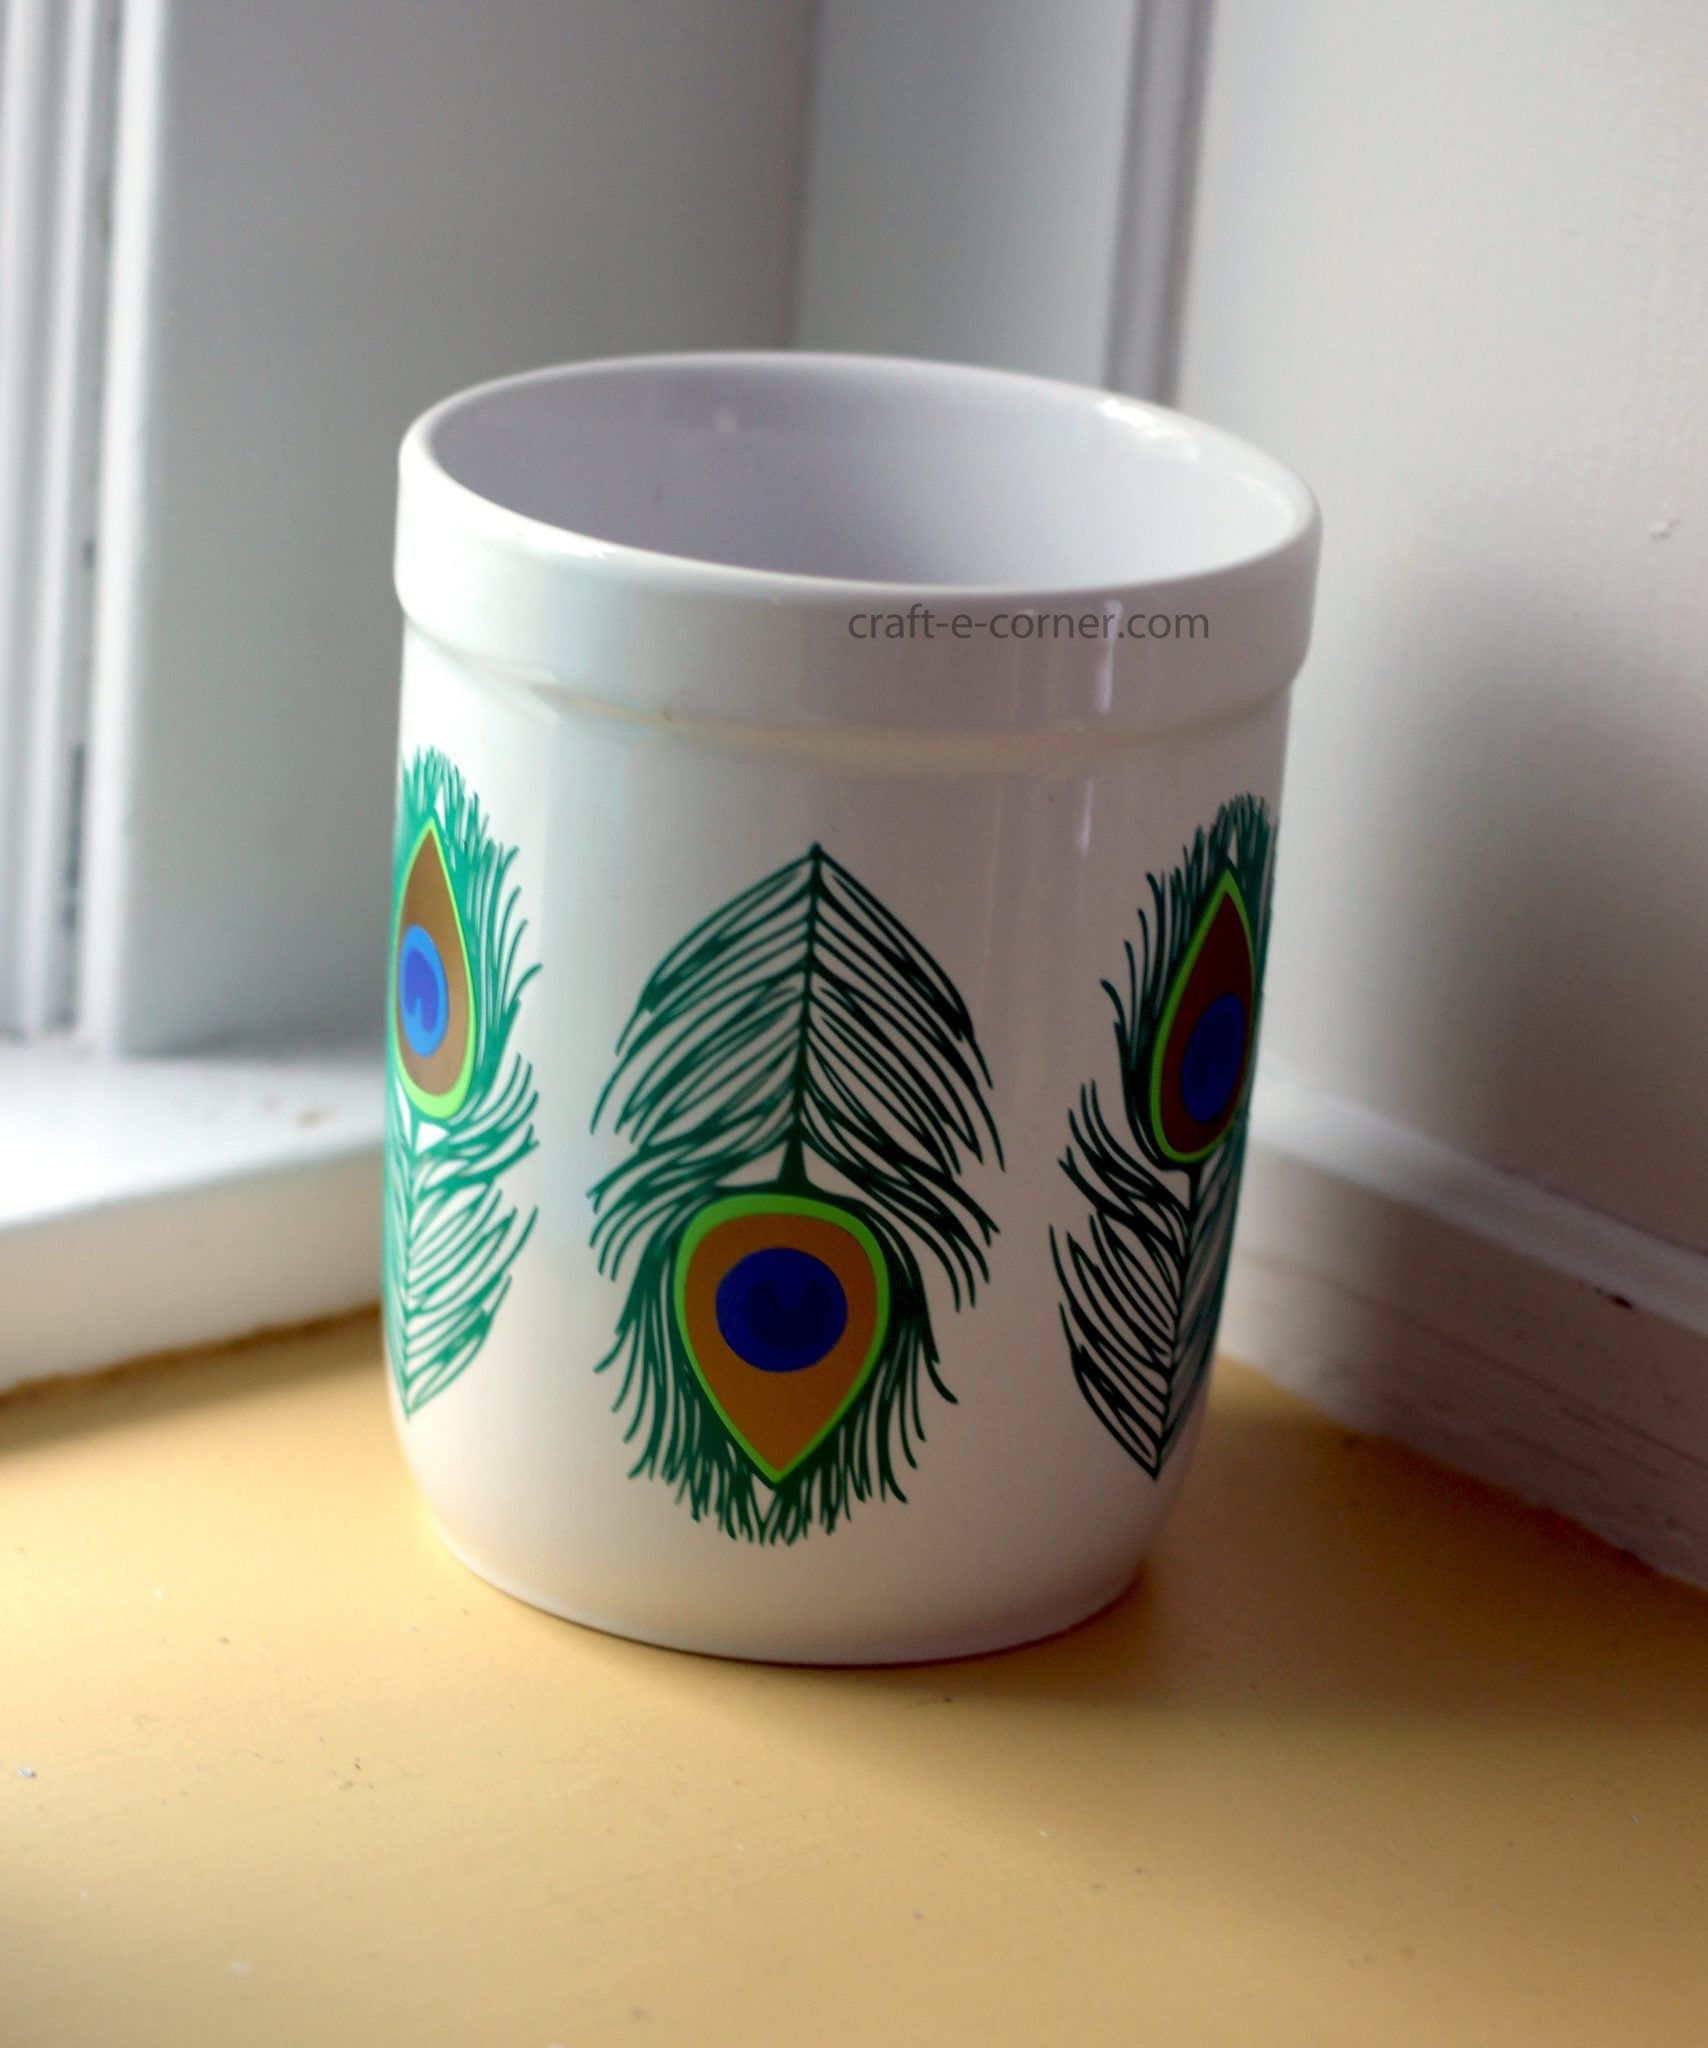 Design #9: Peacock Feather! Detailed Weeding, Utensil Holder Project